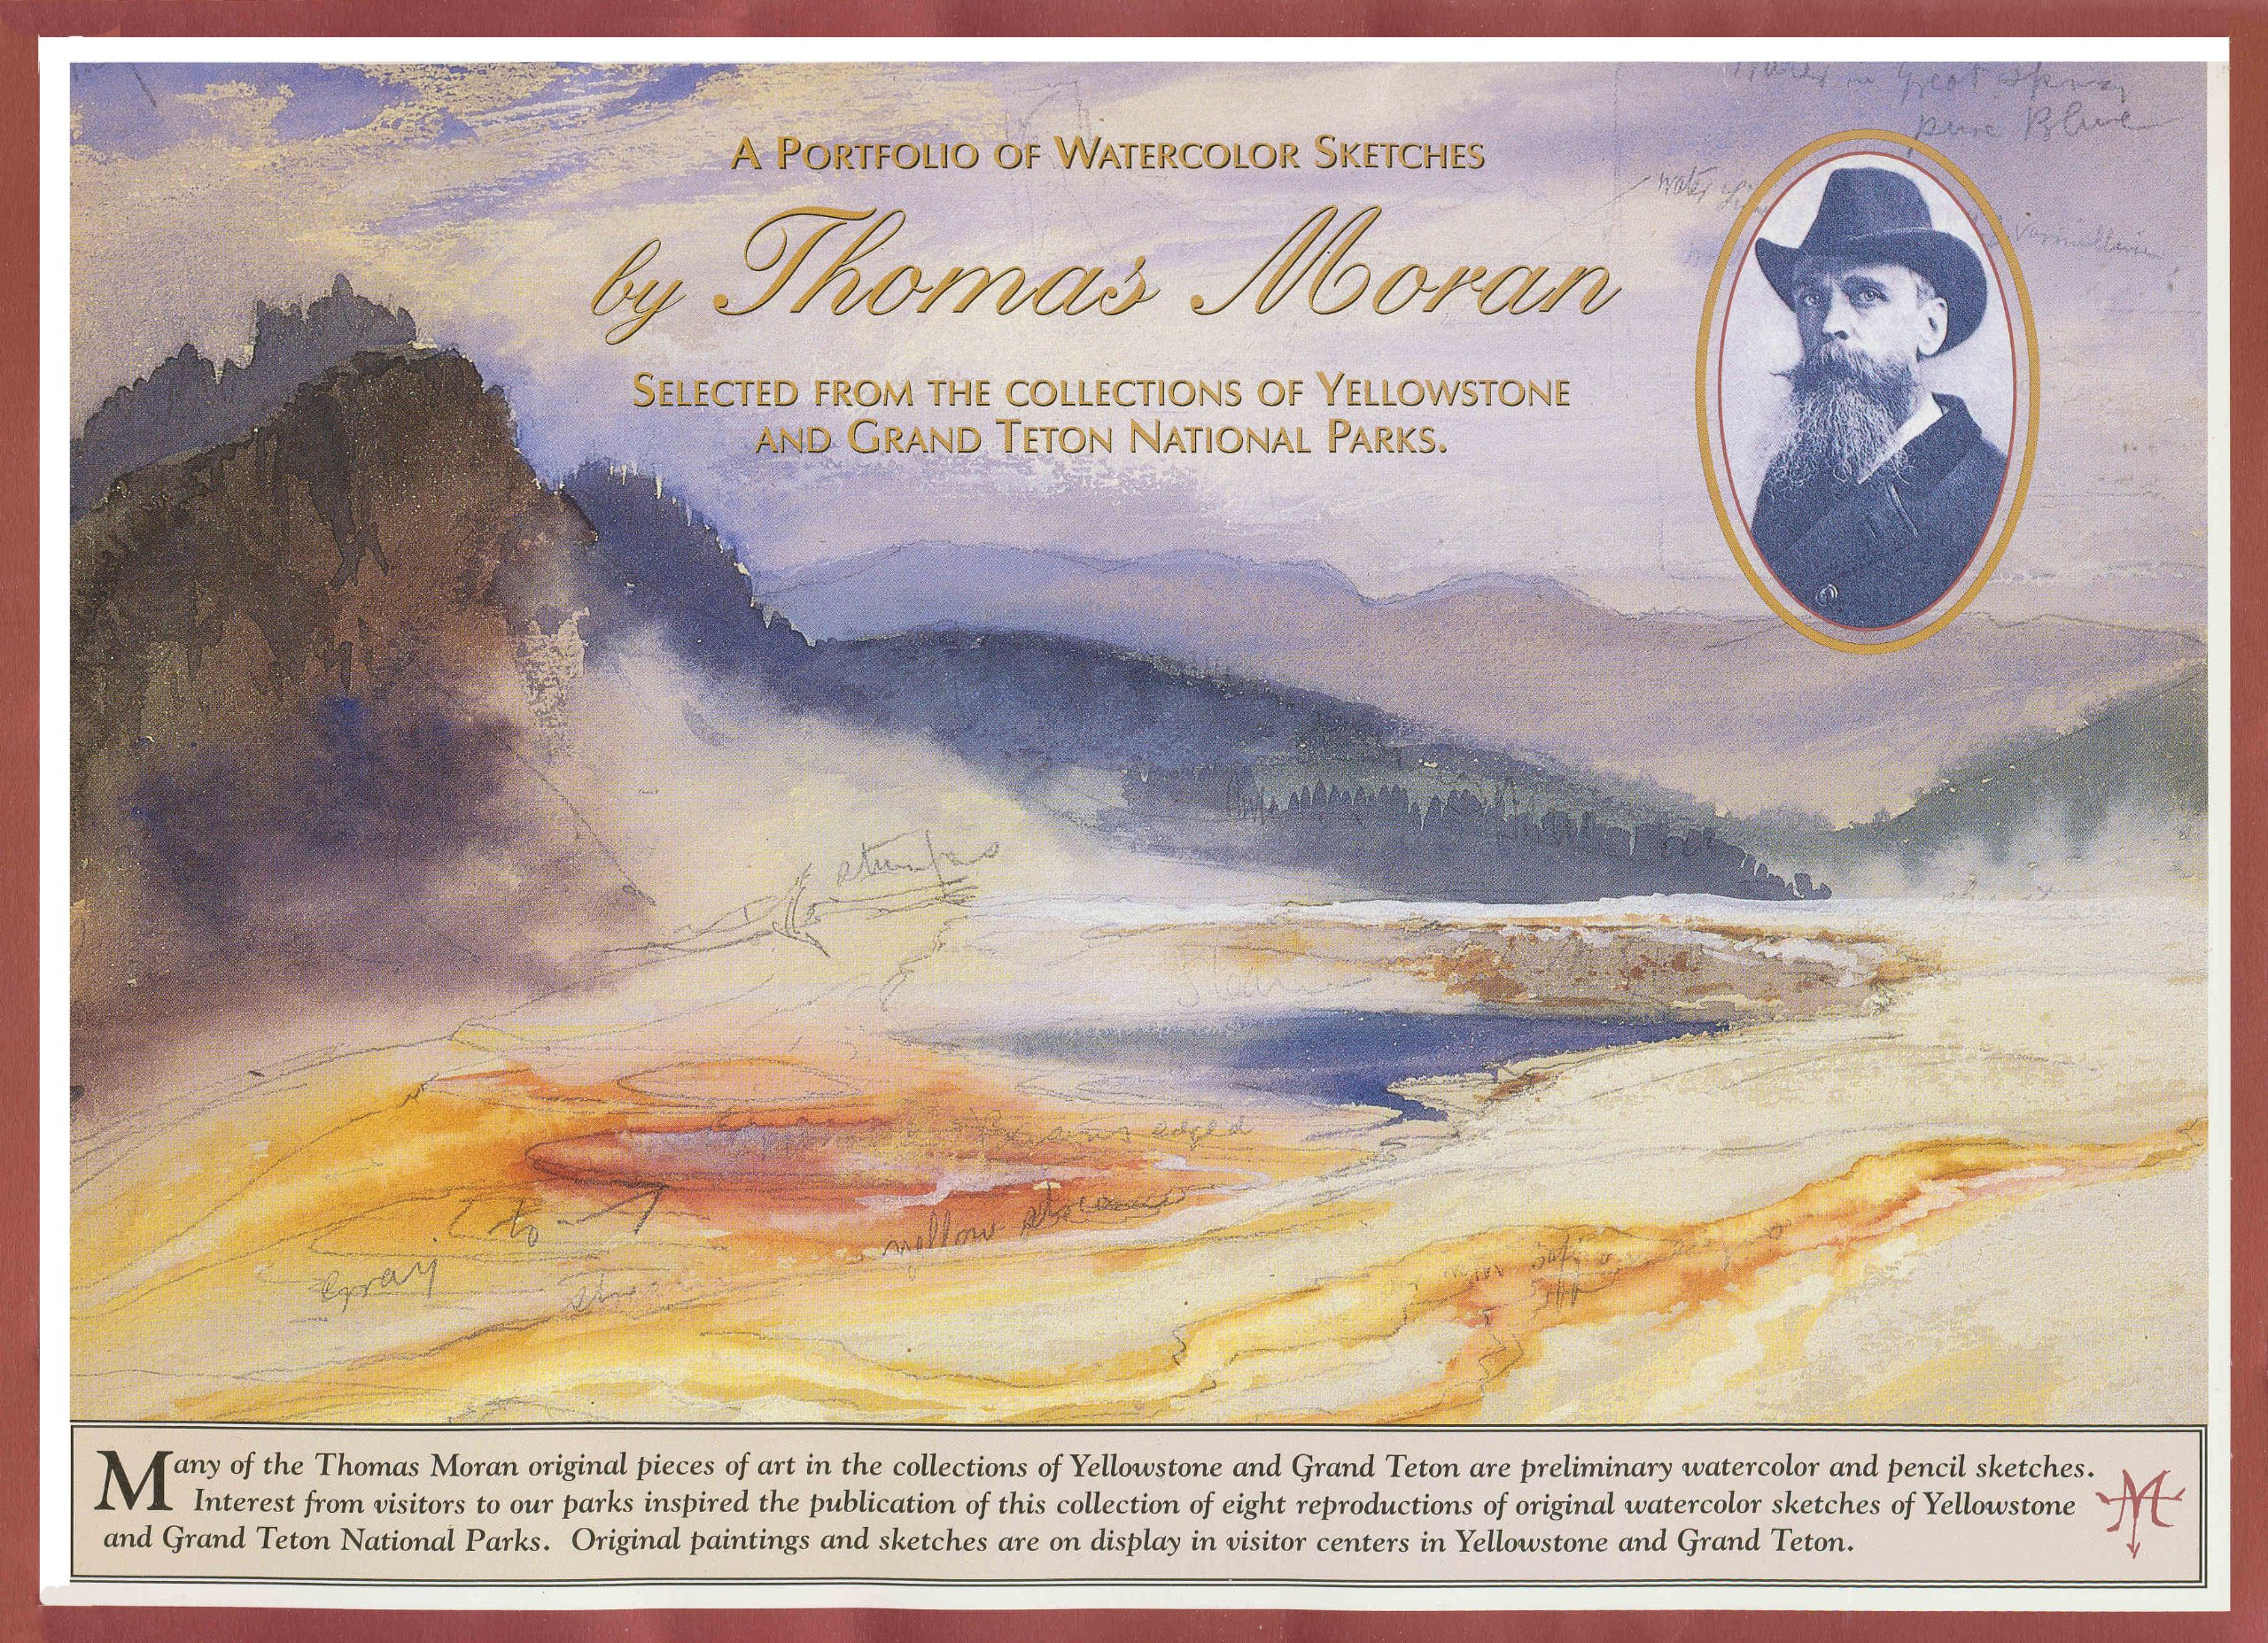 a portfolio of watercolor sketches by thomas moran selected from the collections of yellowstone and grand teton national parks